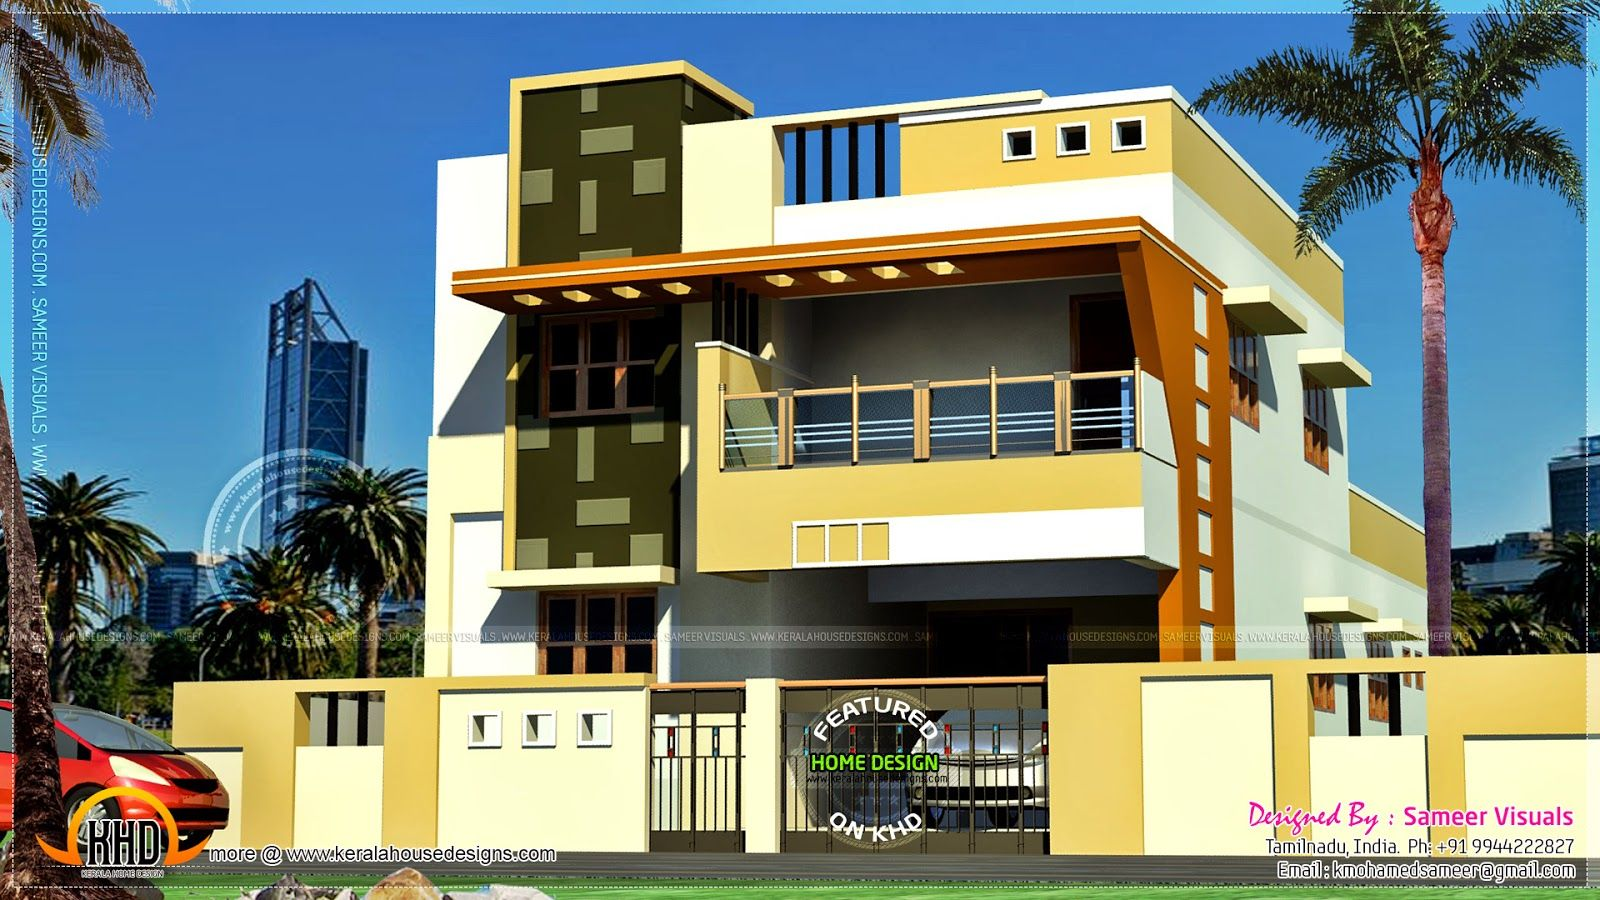 front elevation indian house designs small kitchen designs indian home floor plans kerala joy studio design gallery design front elevation indian house - Home Design Gallery